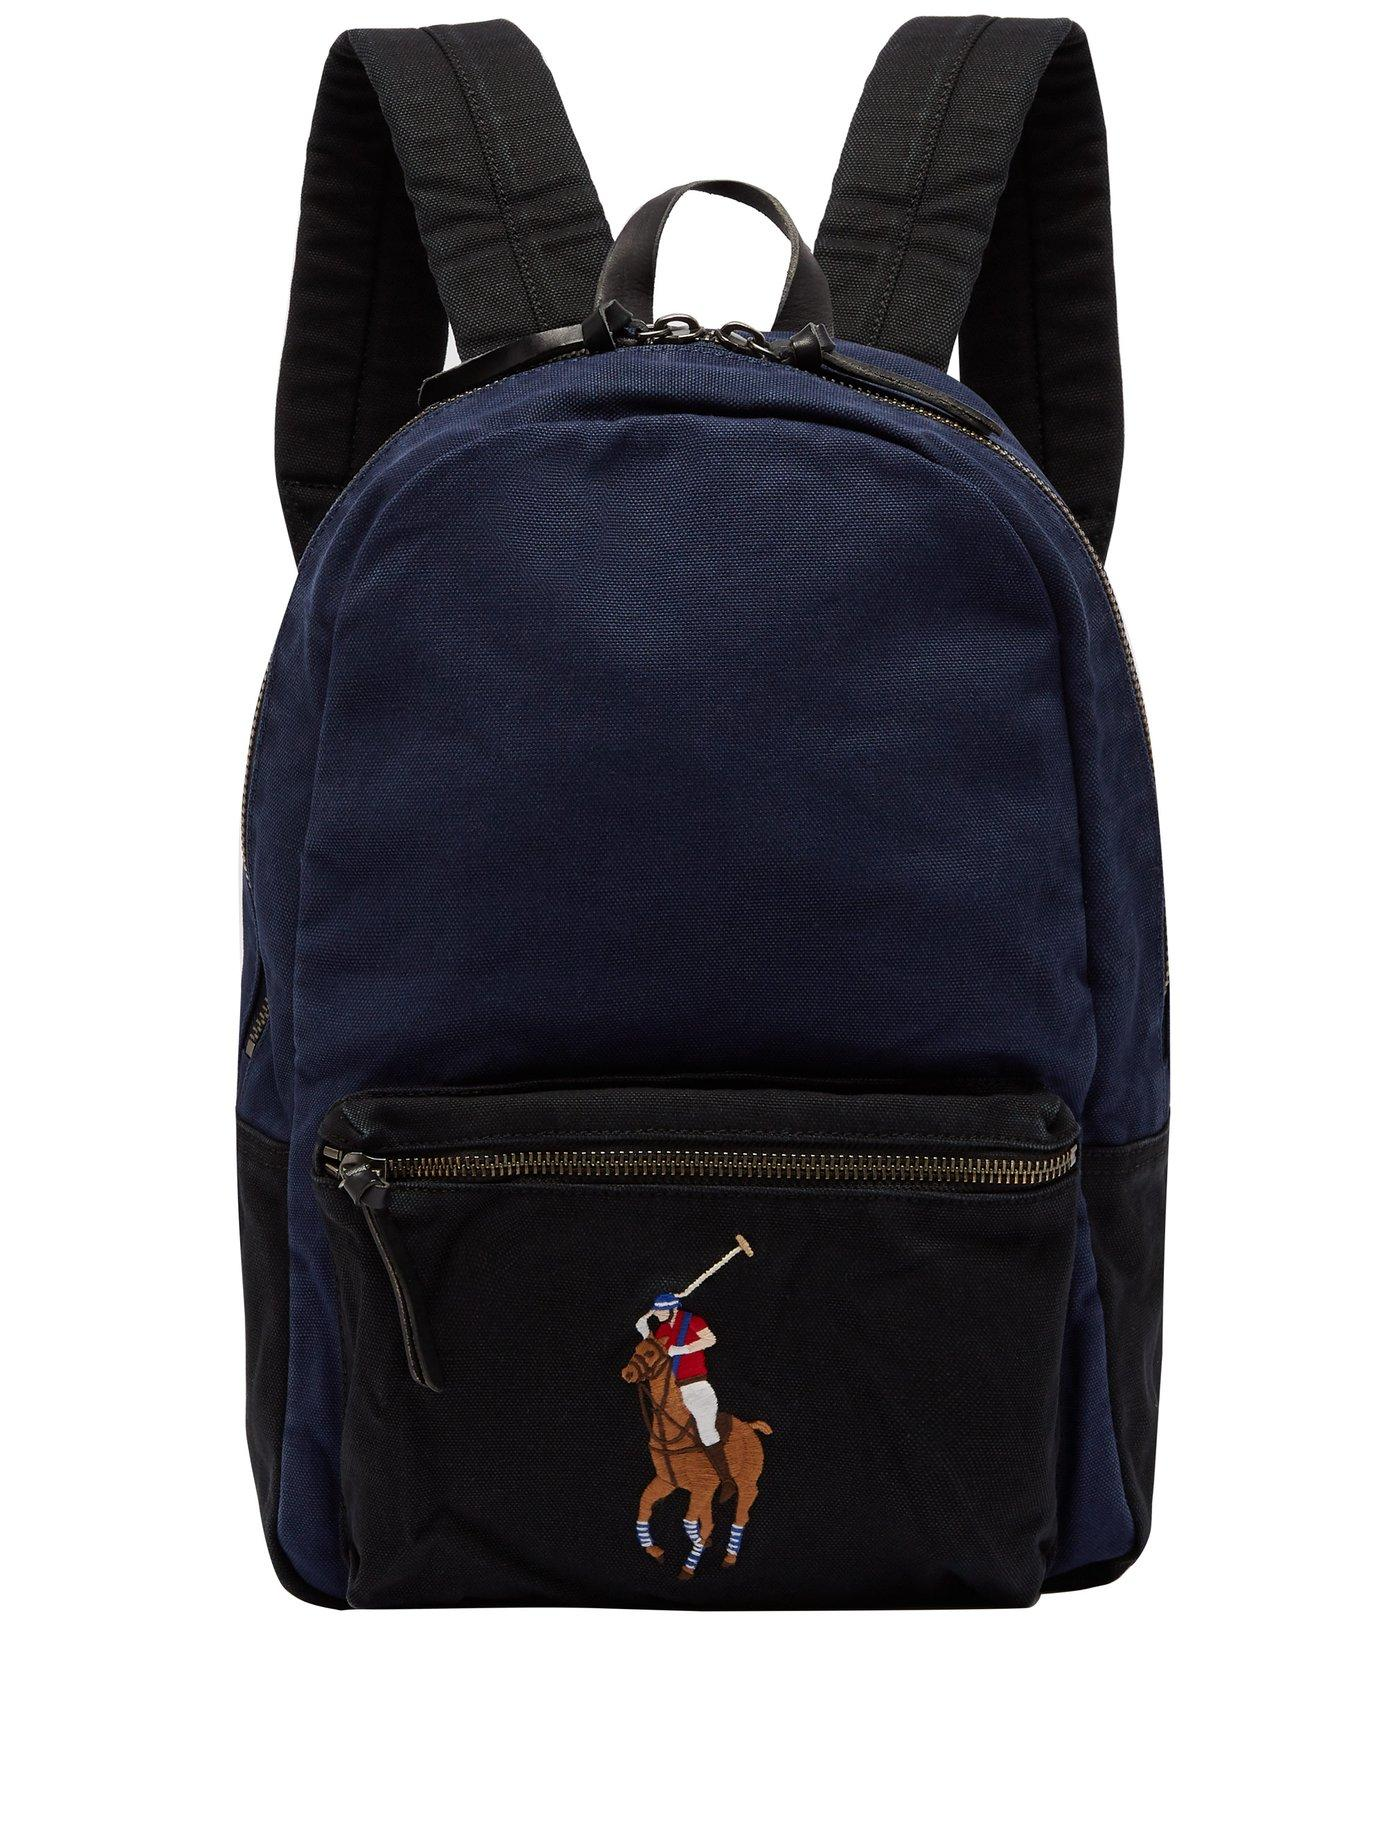 9a08373bdc Lyst - Polo Ralph Lauren Logo Embroidered Canvas Backpack in Blue ...